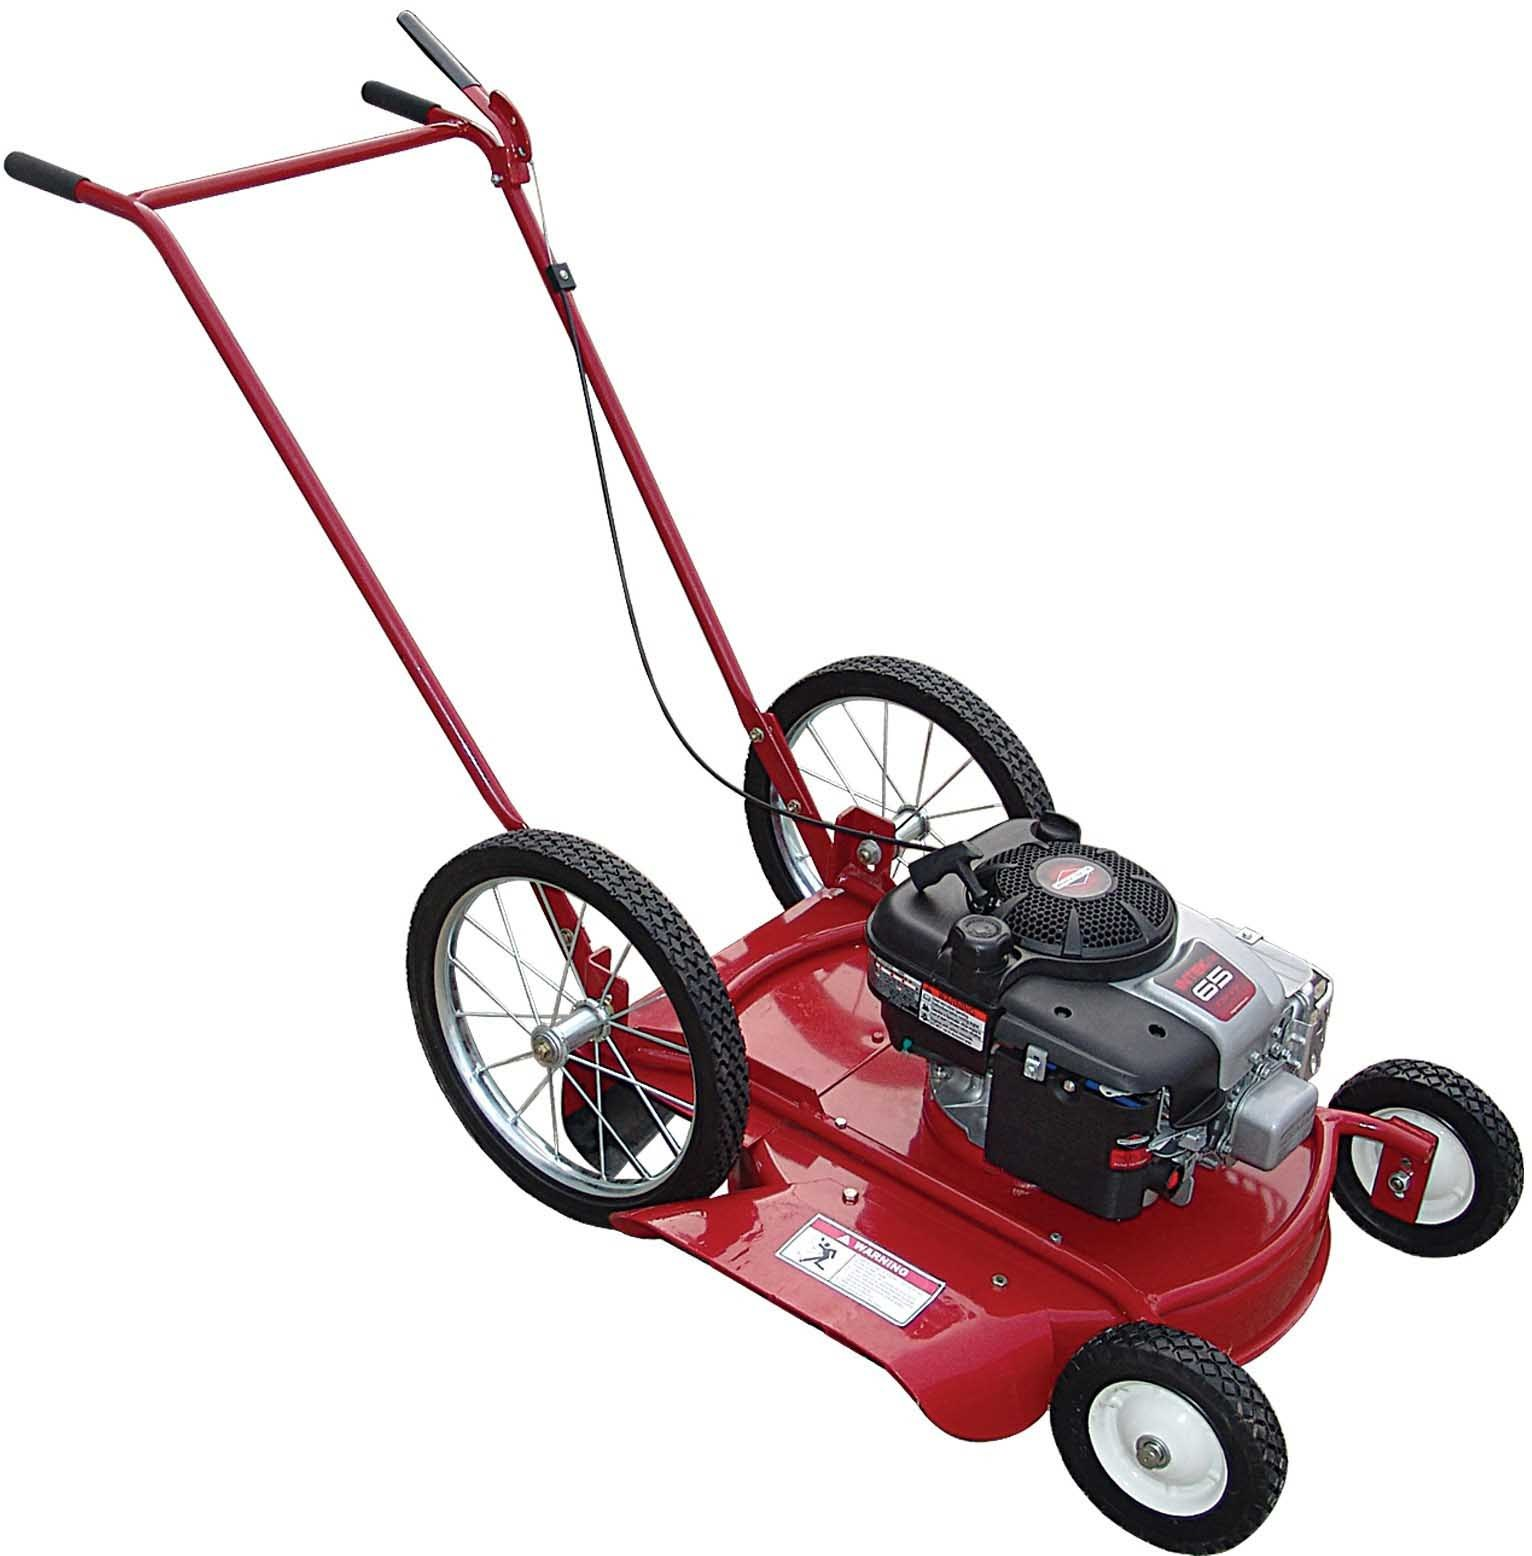 how to fix a briggs & stratton lawn mower